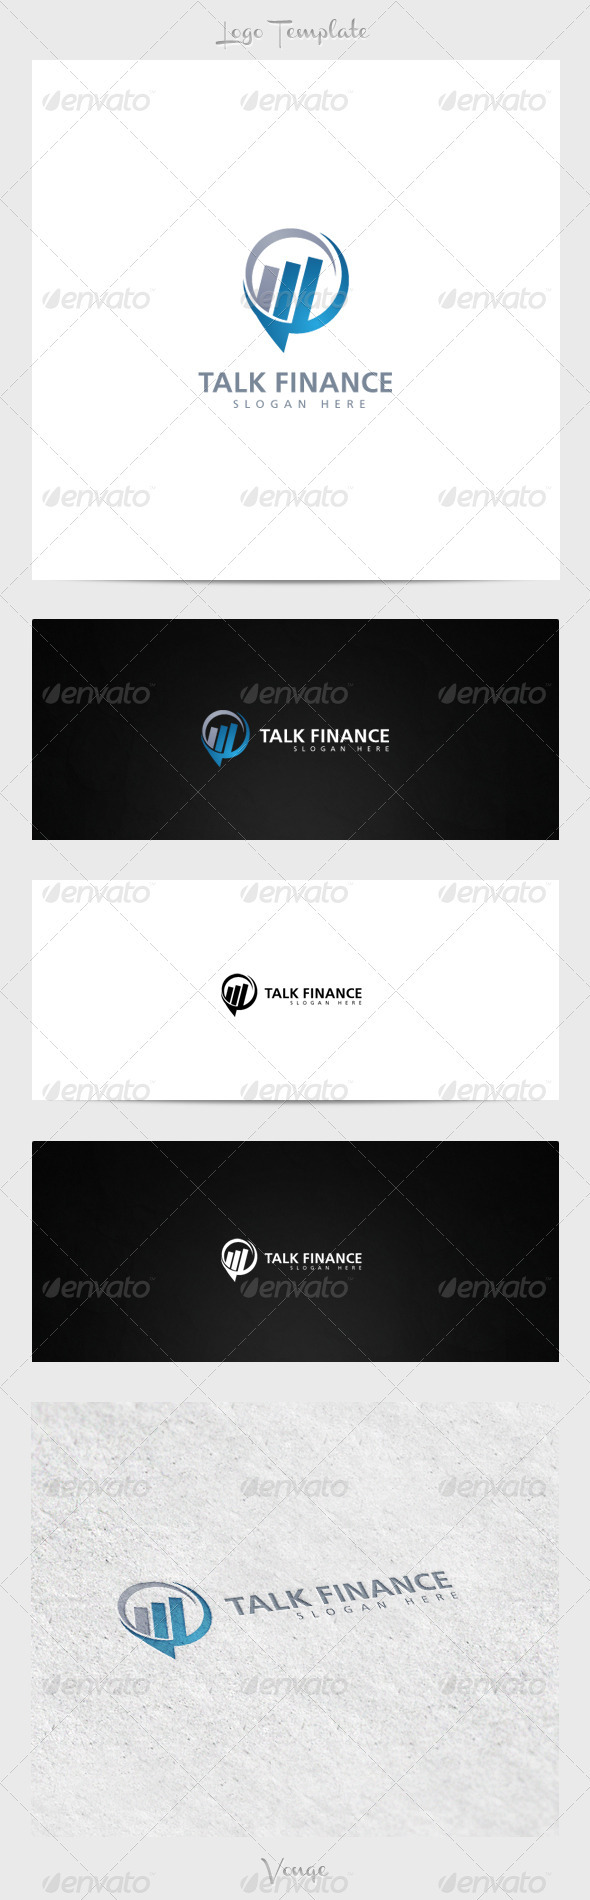 GraphicRiver Talk Finance 3915638